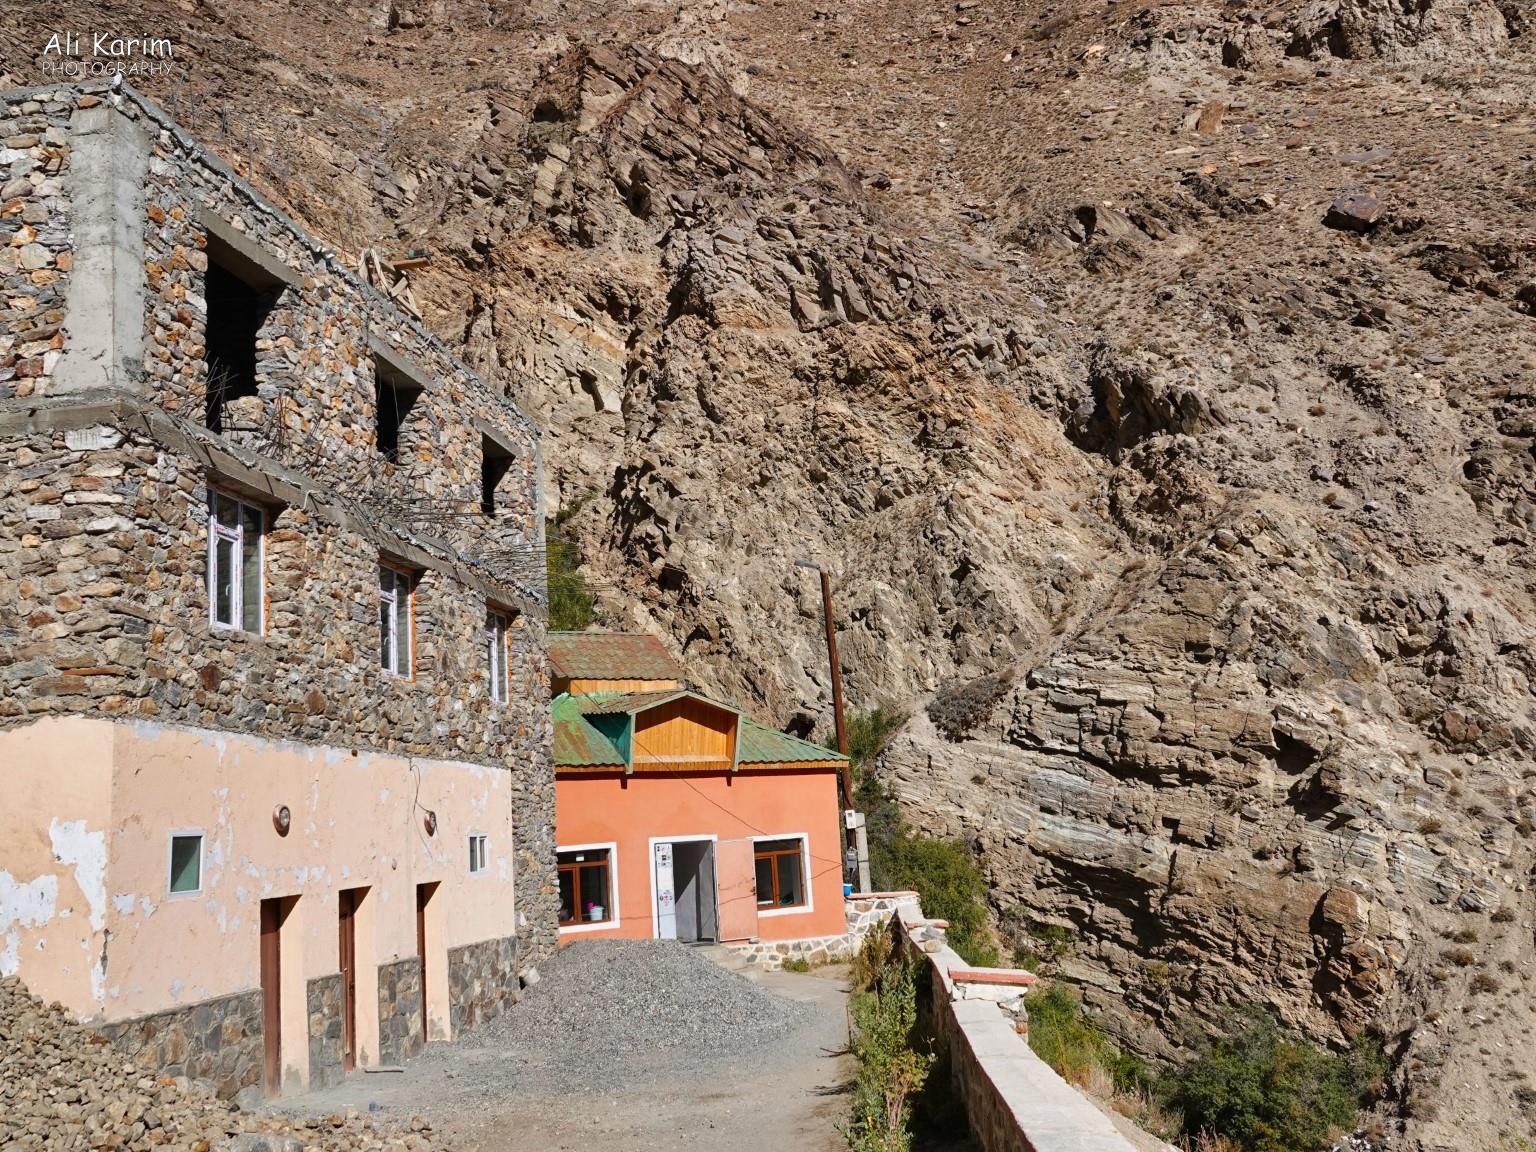 Langar, Bulunkul Tajikistan, Bibi Fatima hot springs were behind the orange building, located in a narrow cleft between the mountain-sides